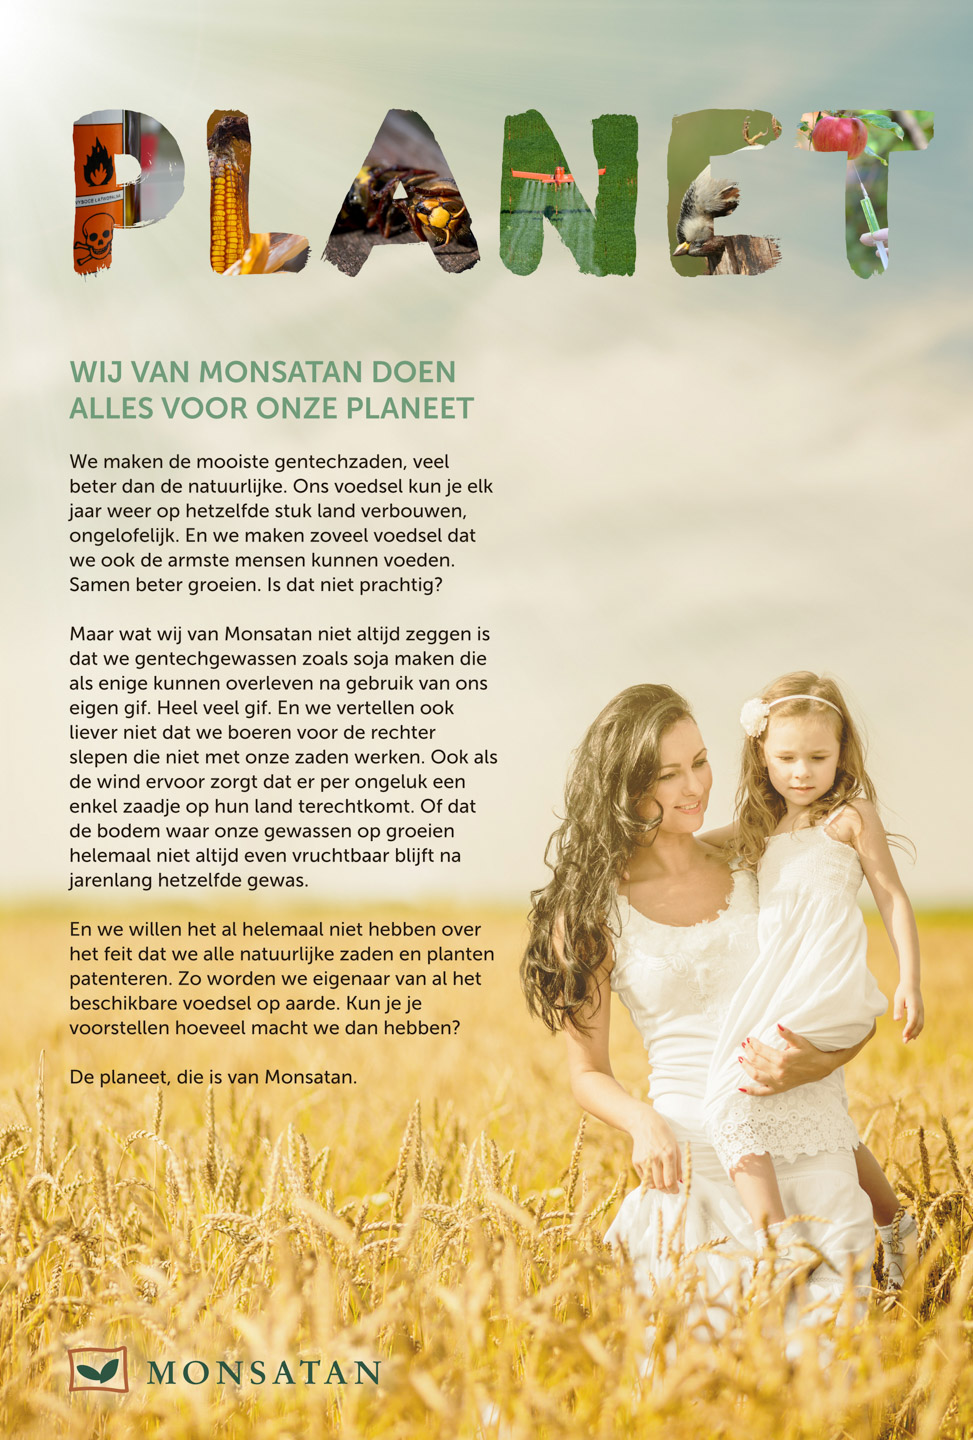 Dagblad-De-Pers-Milieudefensie-Monsanto-monsantan-advertentie-campagne-graphic-alert-act-impact